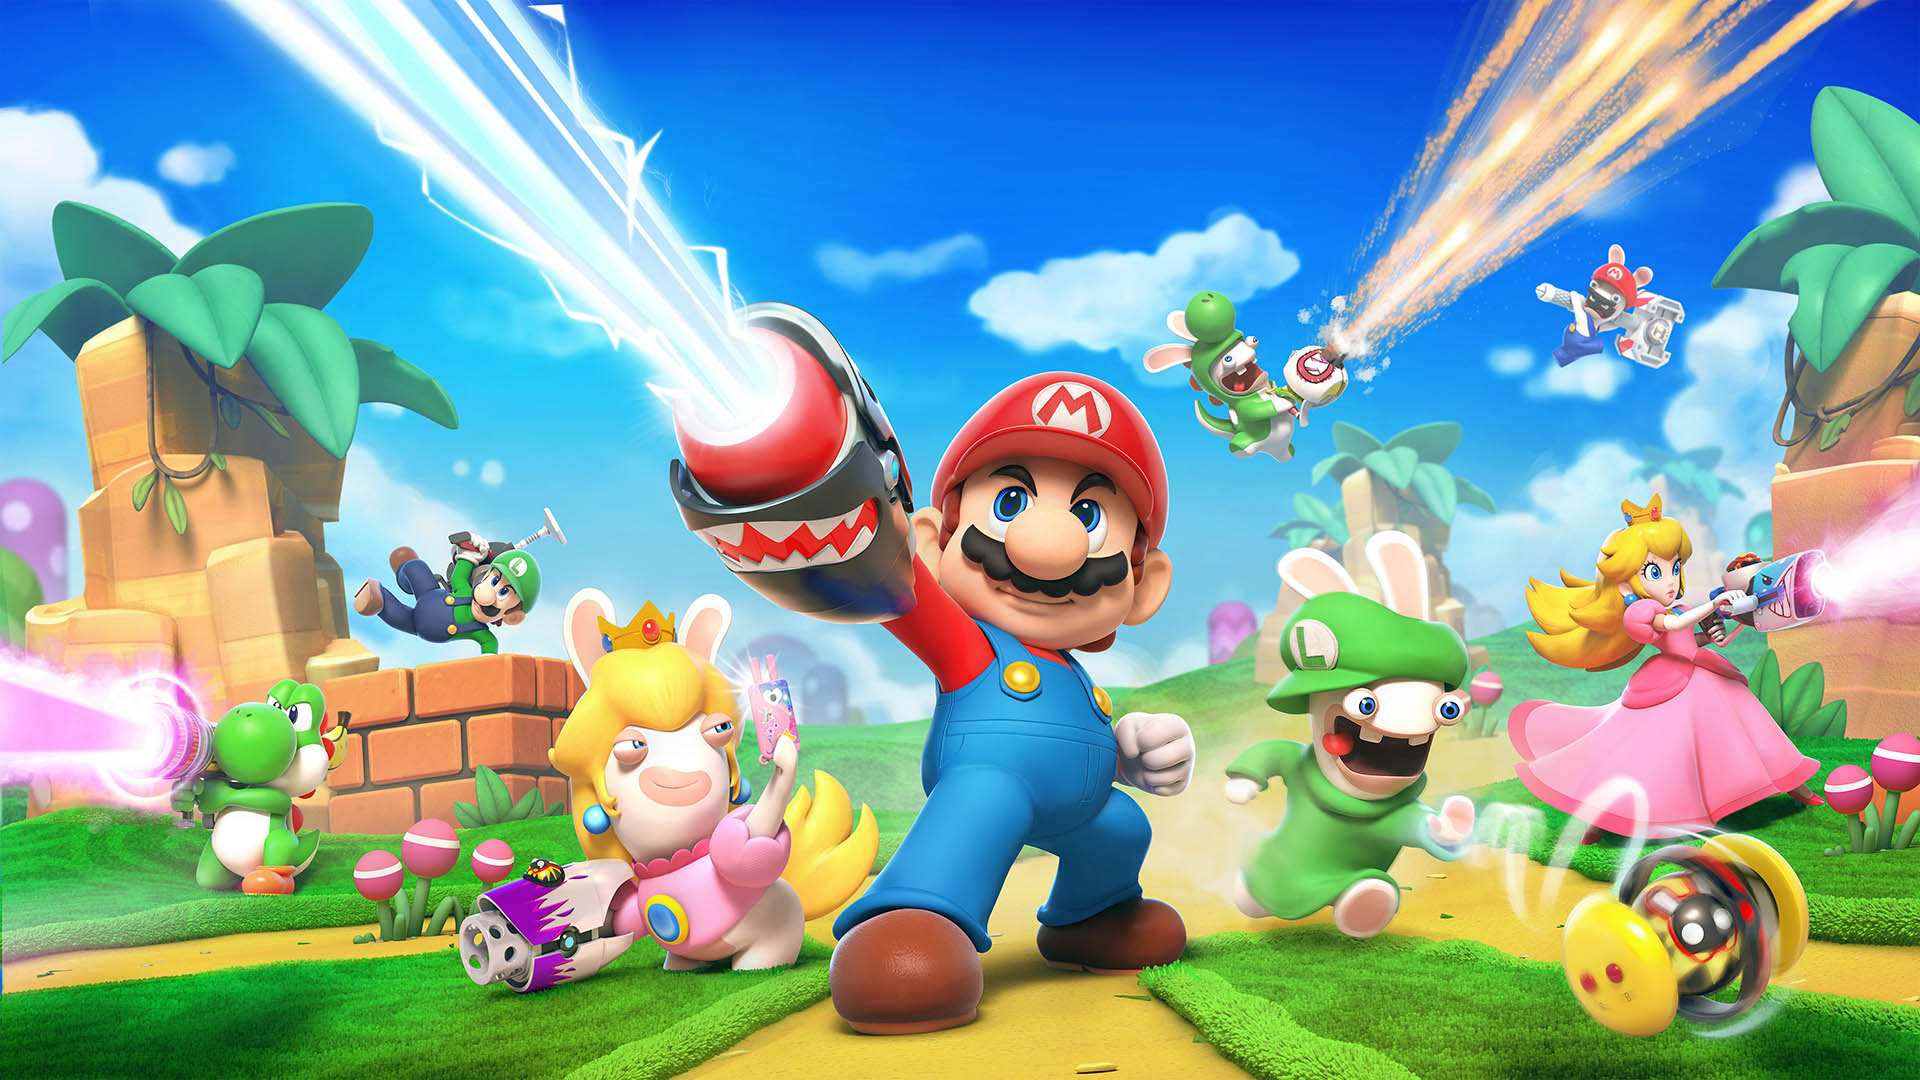 This artwork for Mario + Rabbids Kingdom Battle shows Mario shooting some sort of laser gun that is attached to his arm. Behind him, various rabbids and Mario characters such as Princess Peach and Yoshi are shooting their own weapons and leaping over piec